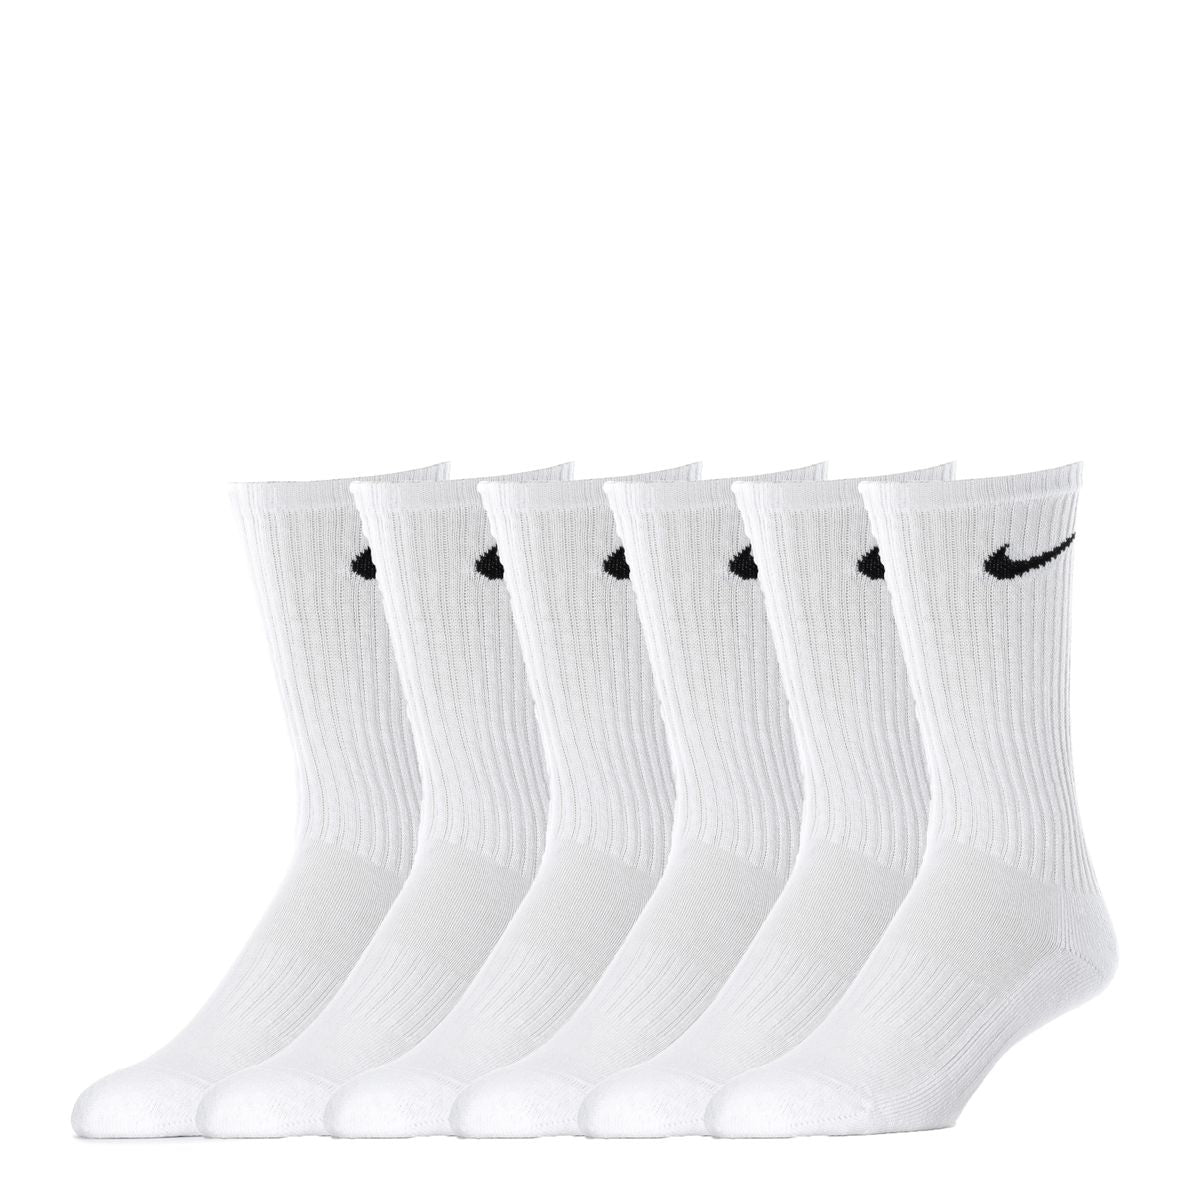 Nike Everyday Cushioned Training Crew Socks 6 Pack xld